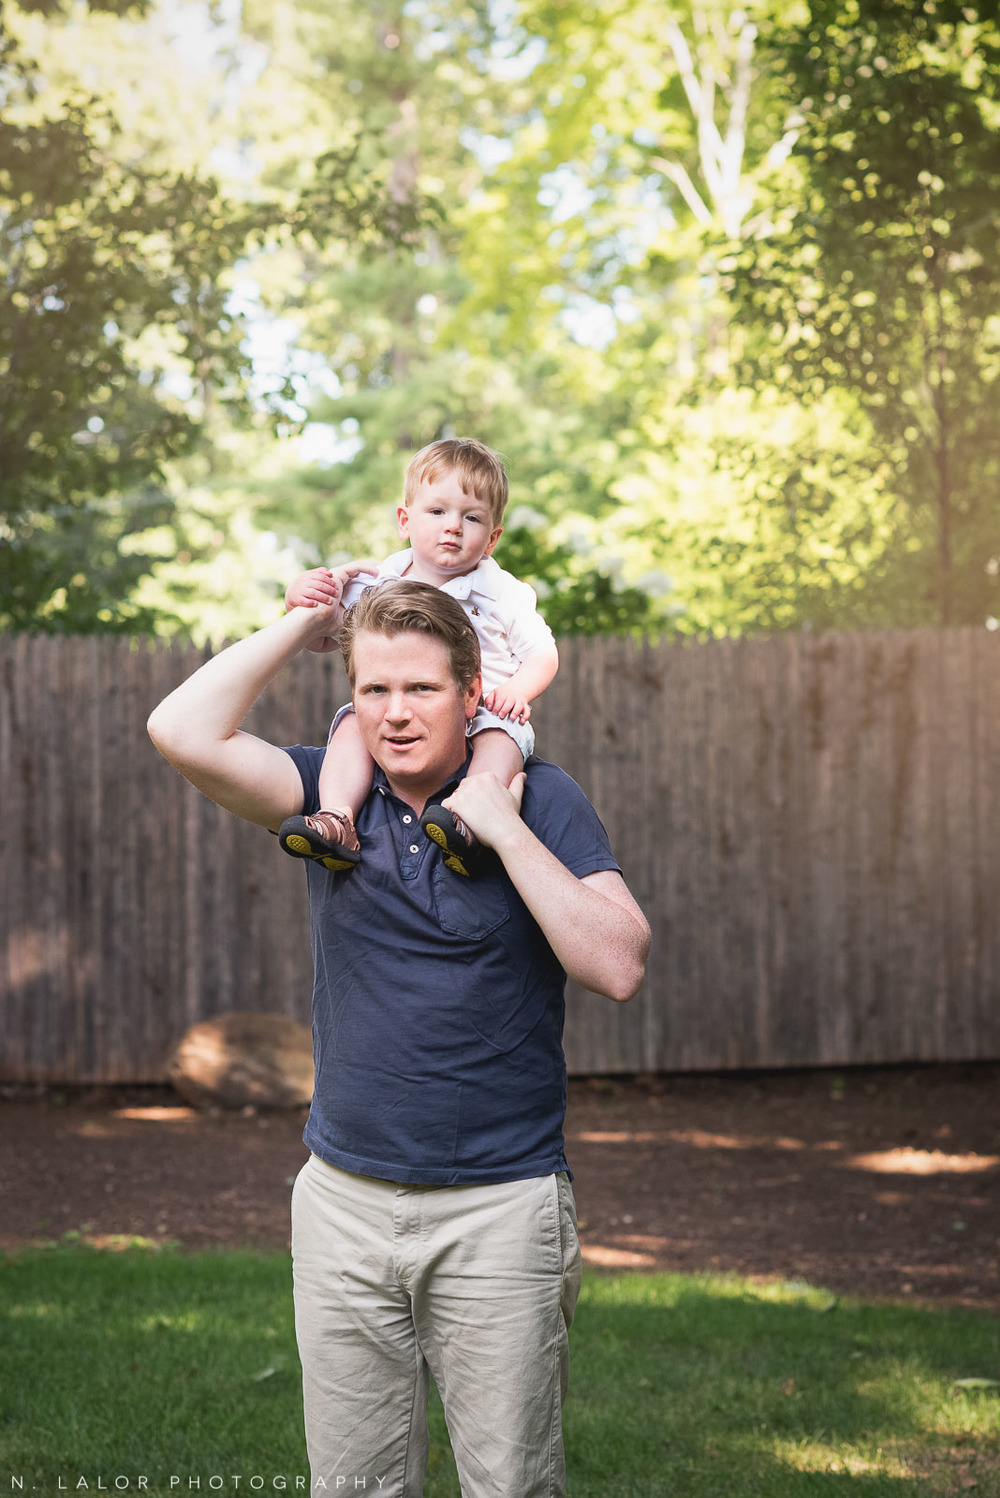 Toddler riding his dad's shoulders in the back yard. Naturally styled family photo by N. Lalor Photography.